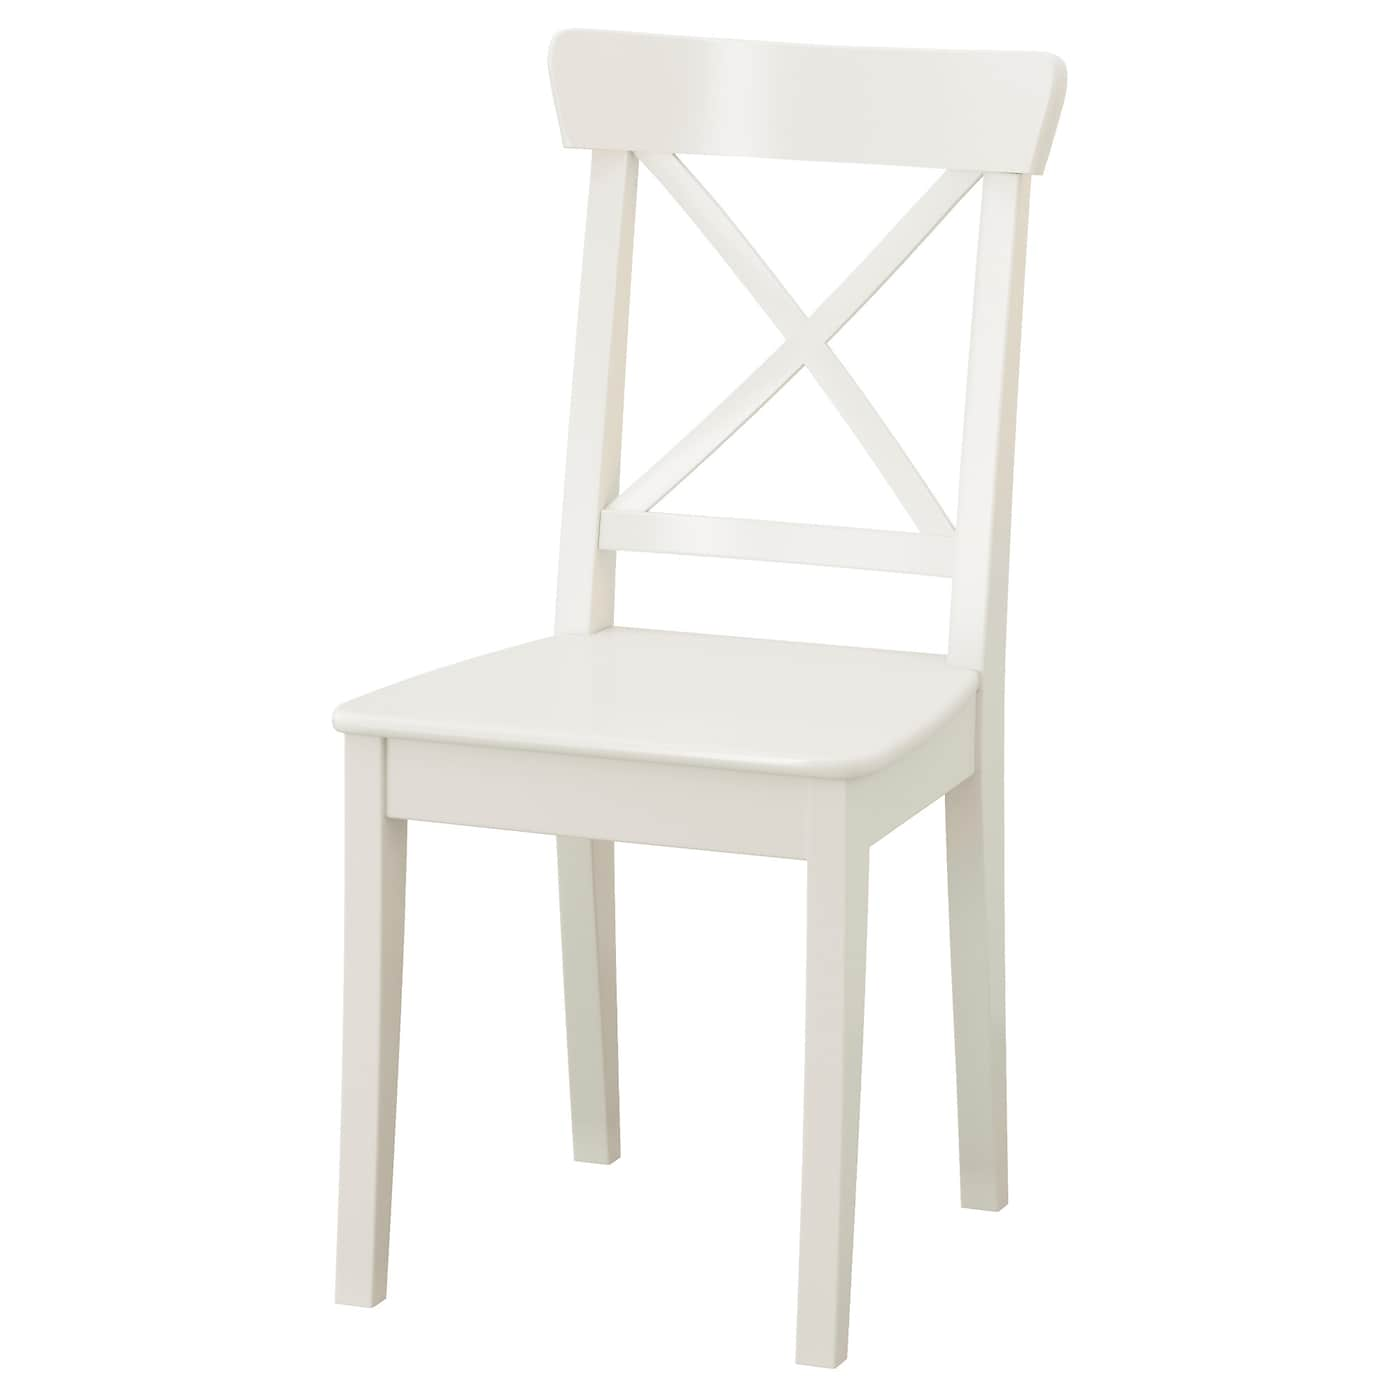 dining chairs kitchen chairs ikea